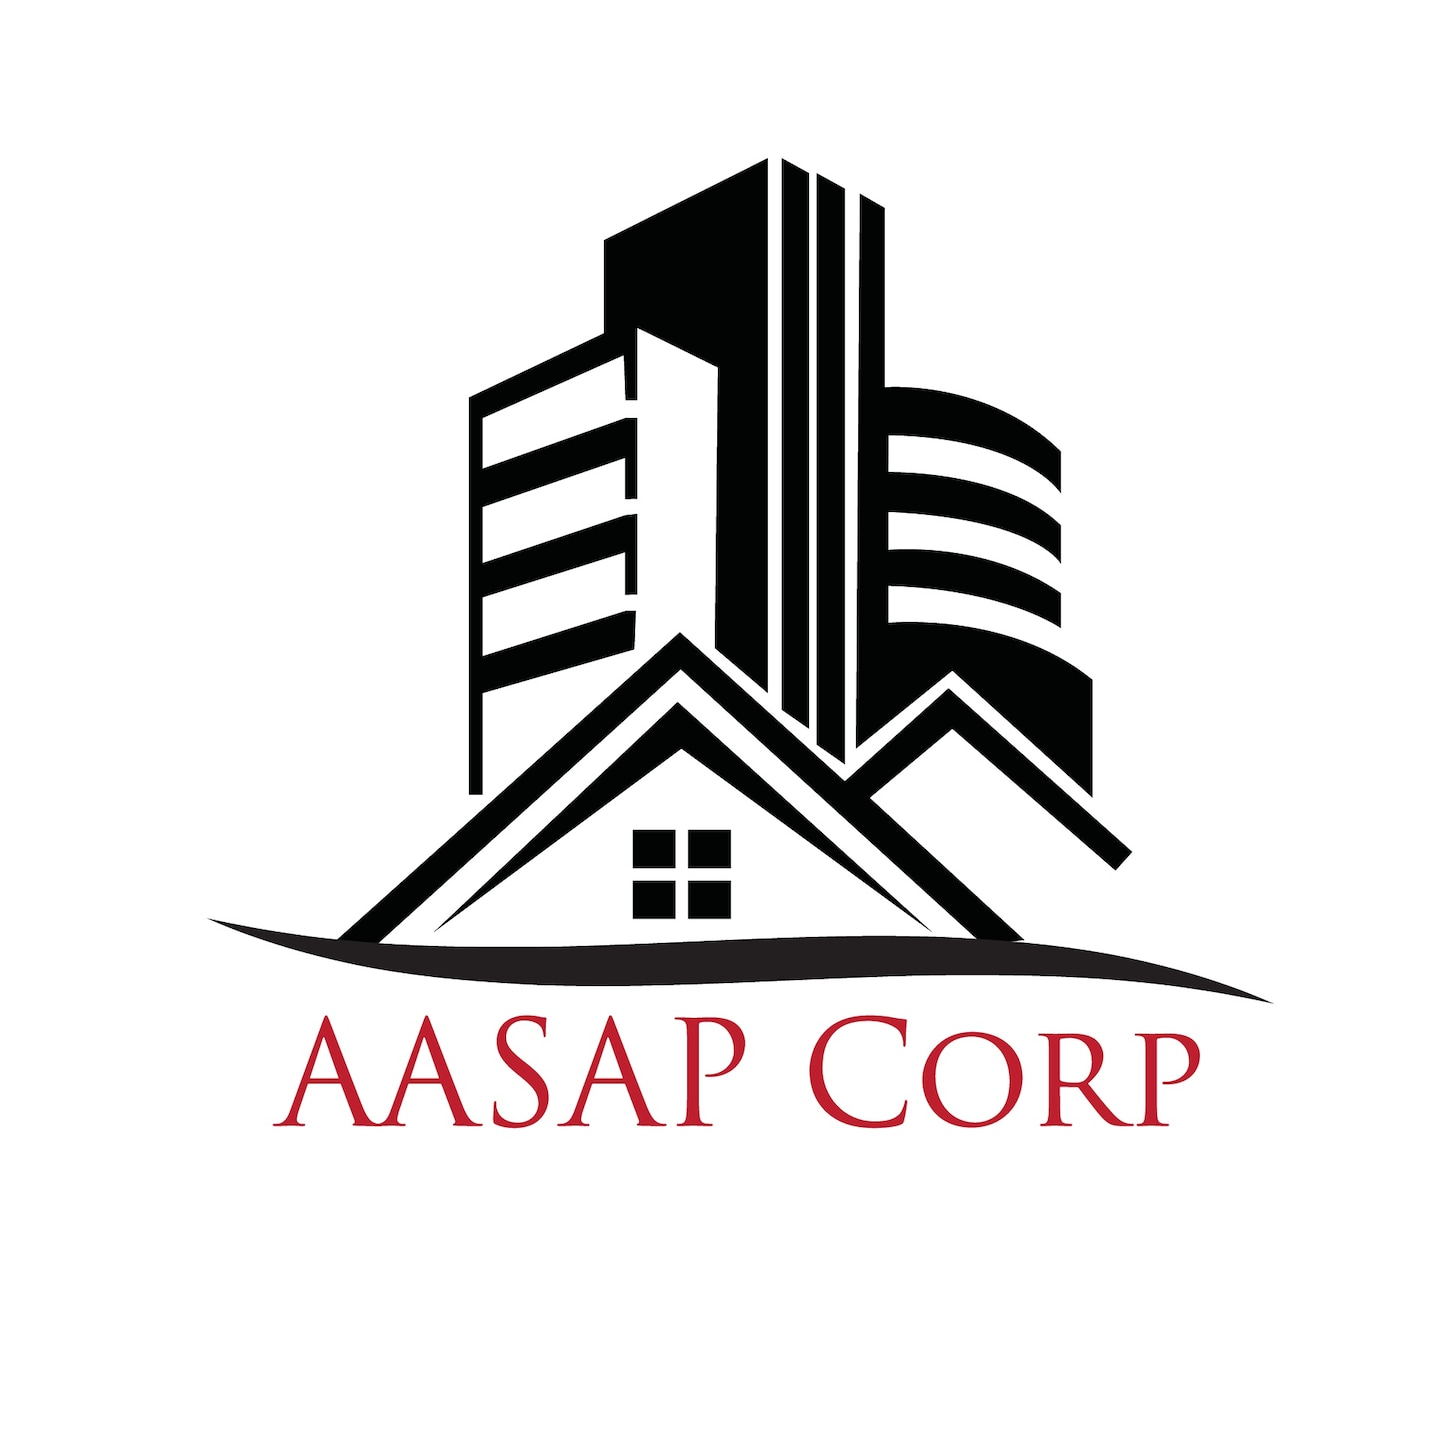 AASAP CORP